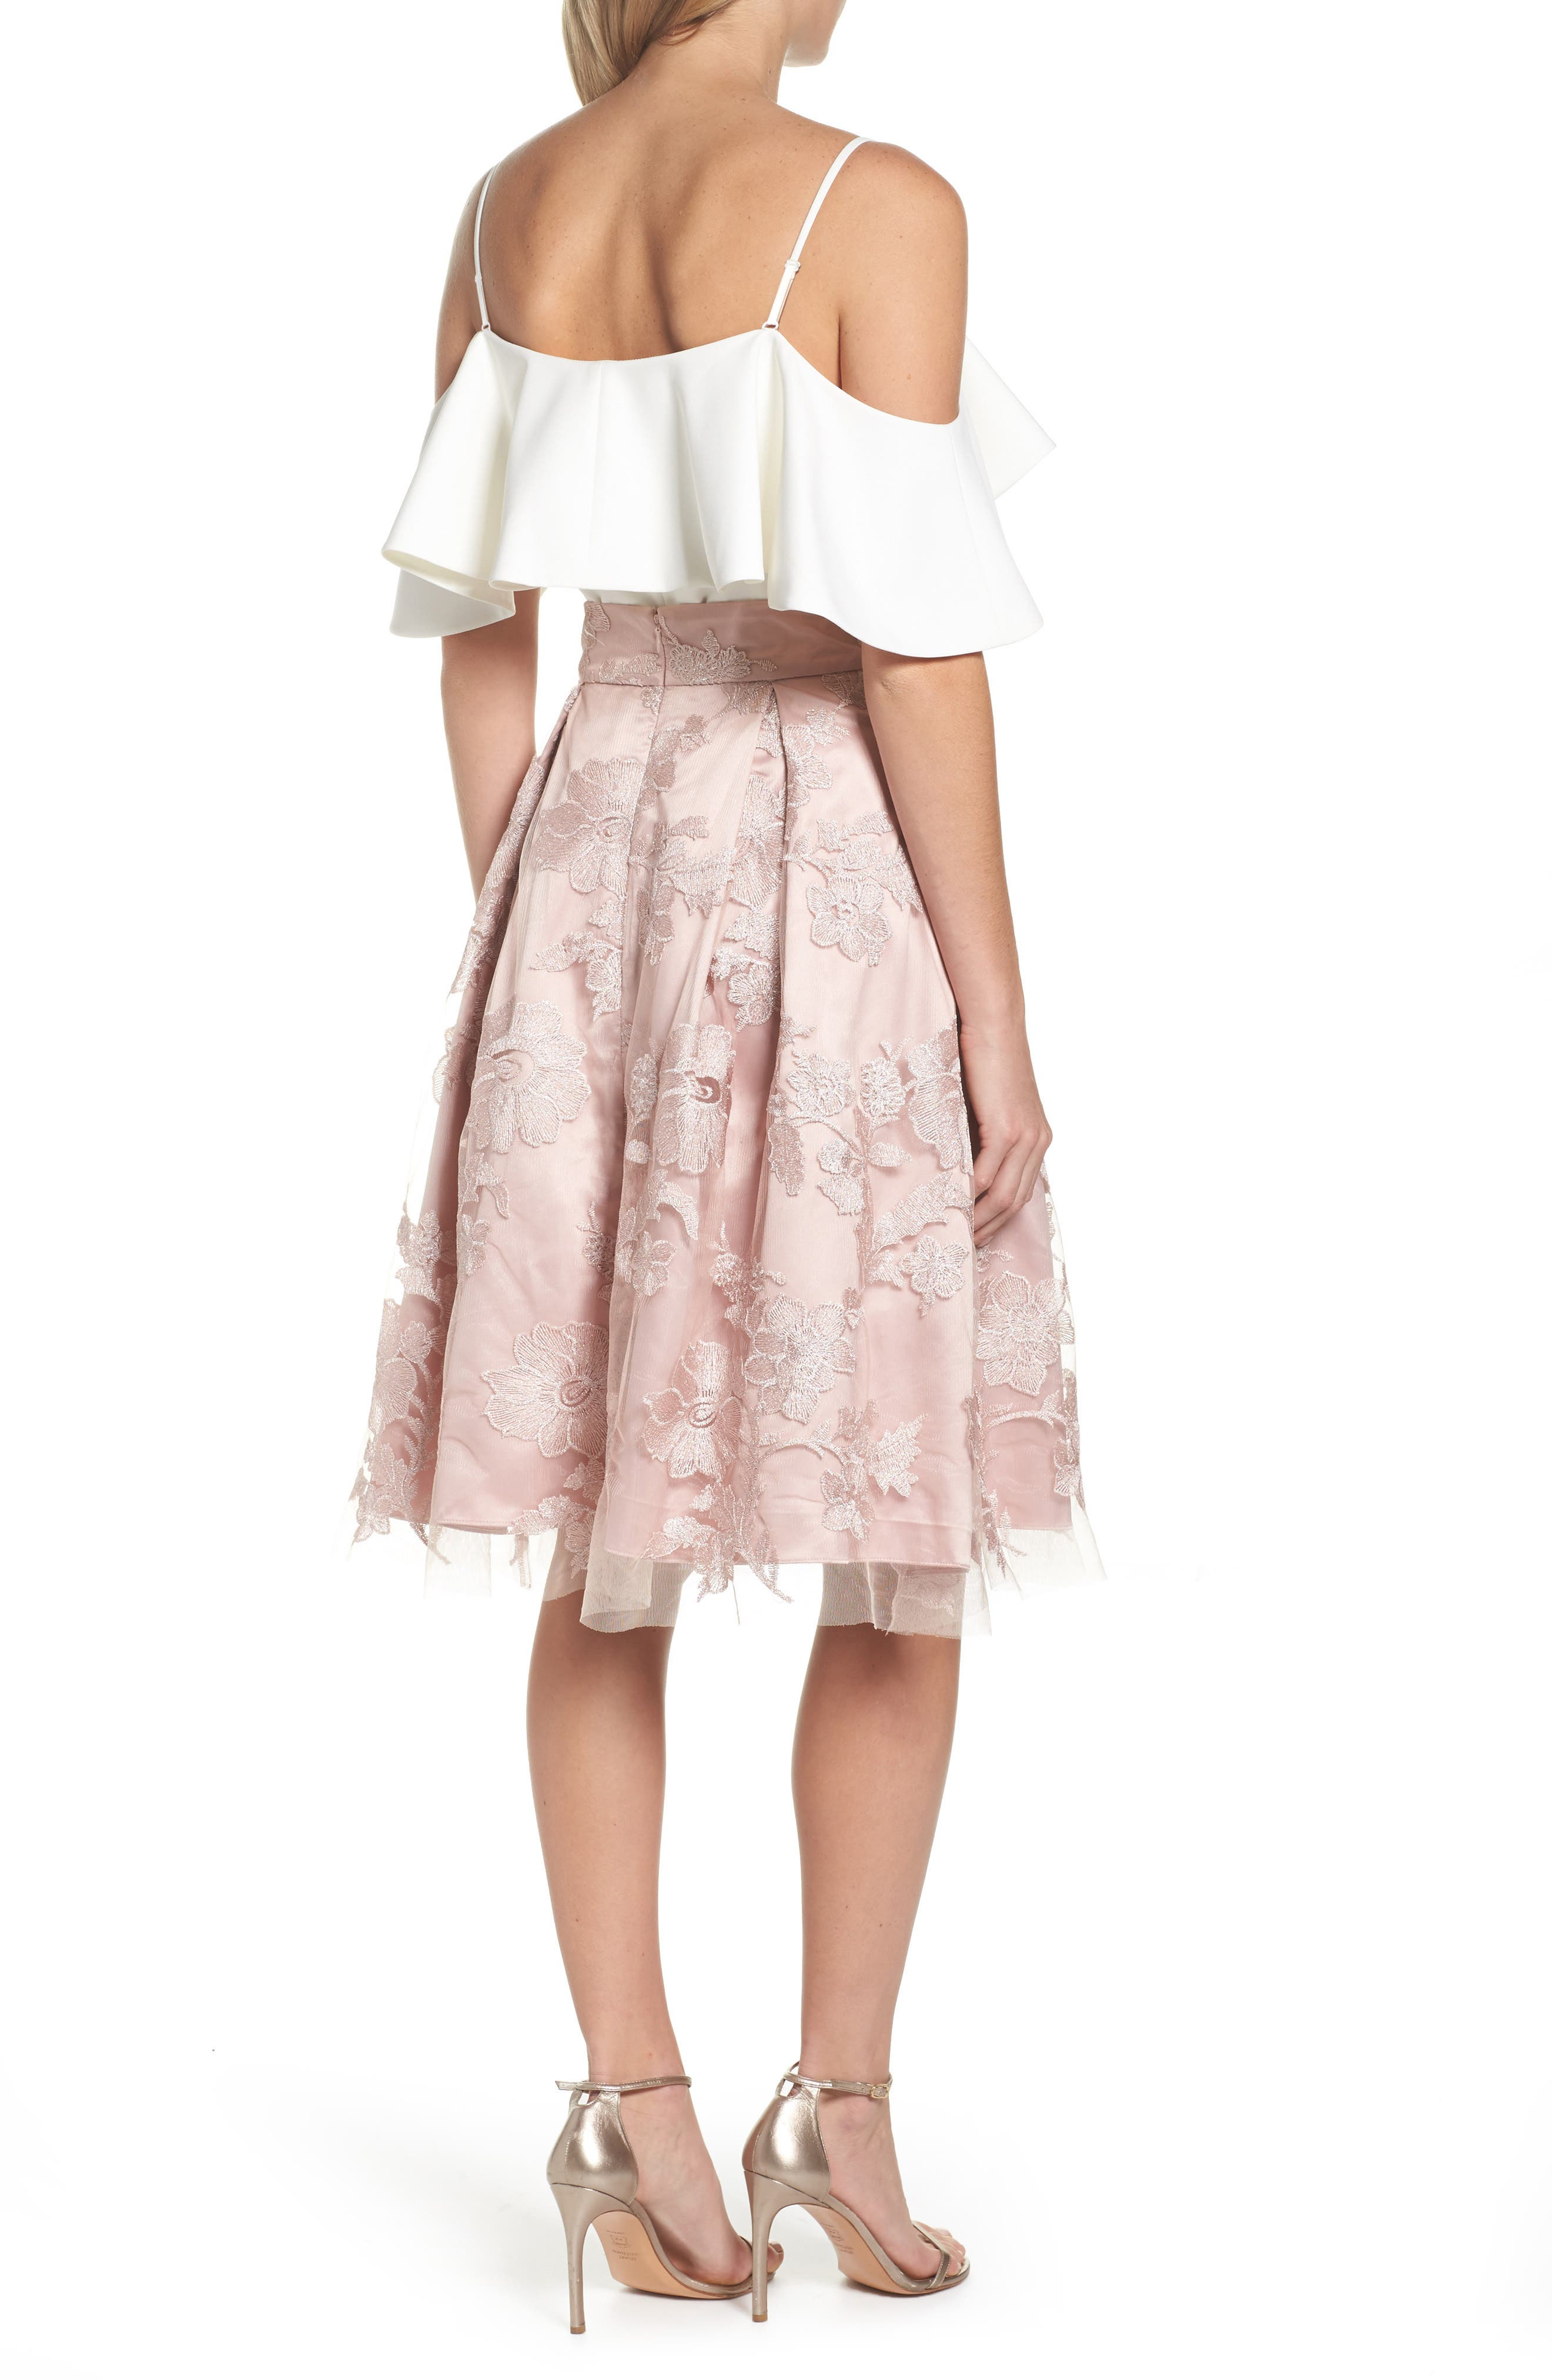 Floral Embroidered Skirt,                             Alternate thumbnail 8, color,                             254